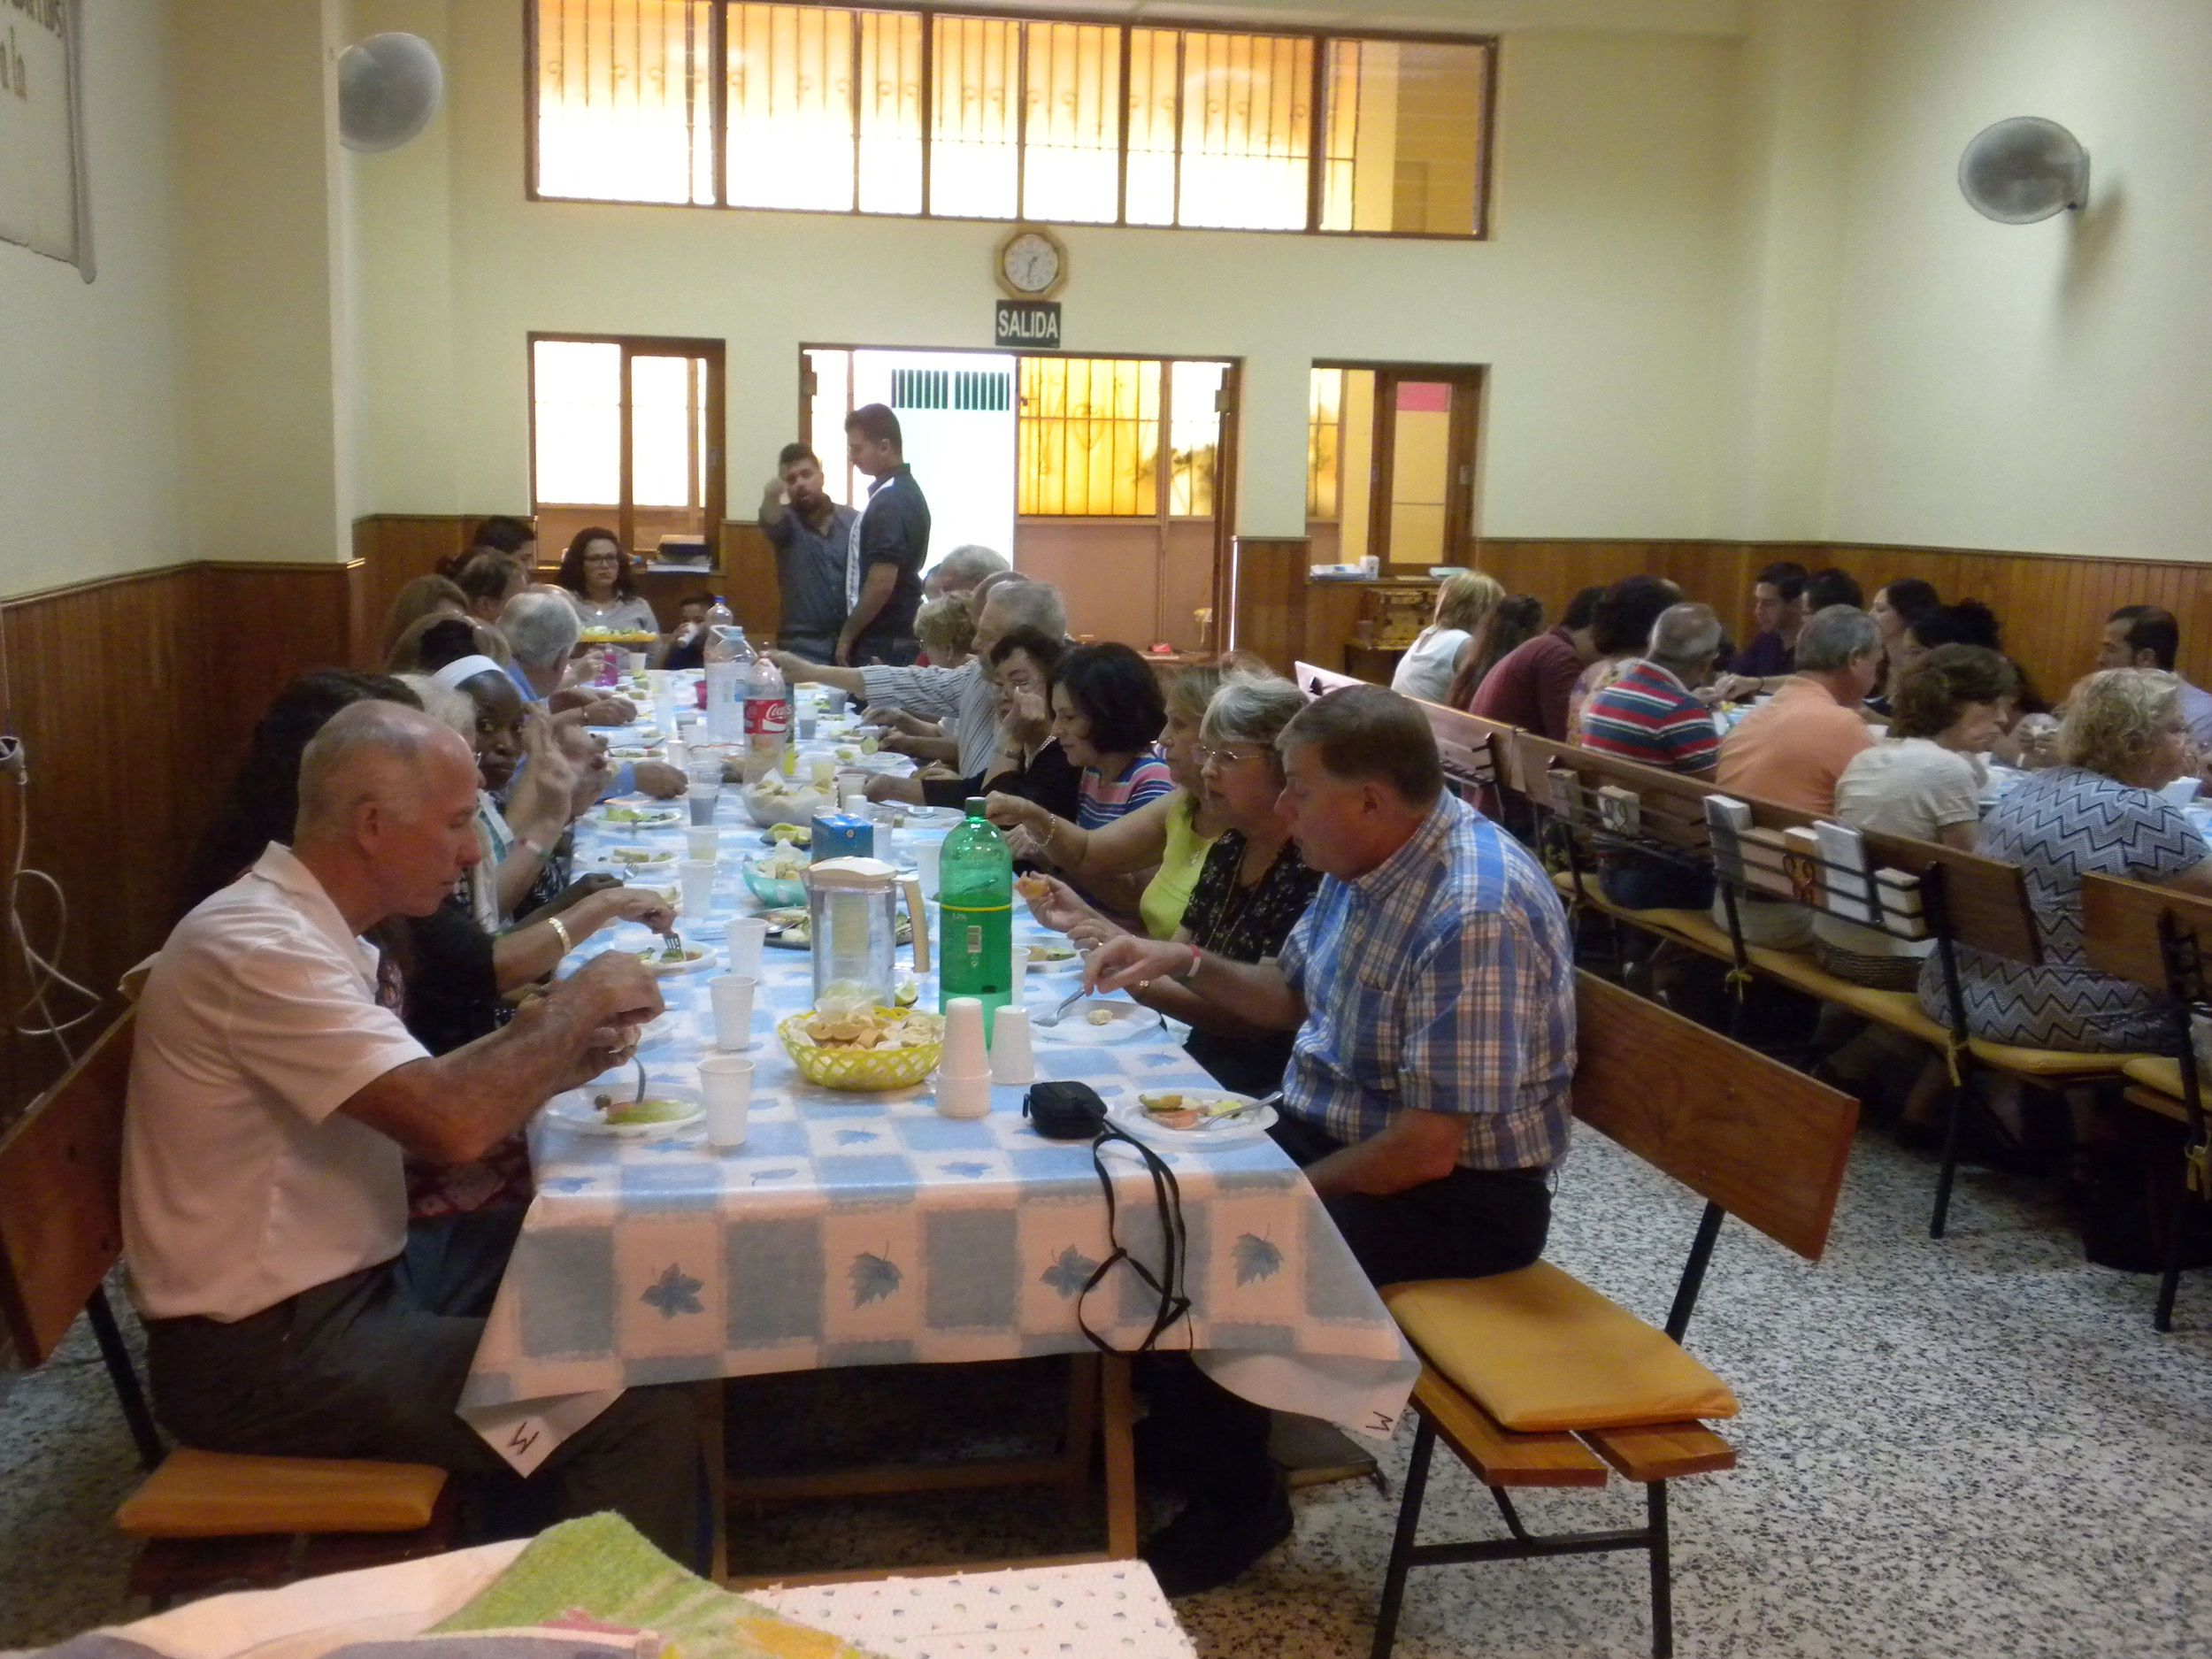 Lunch at the church